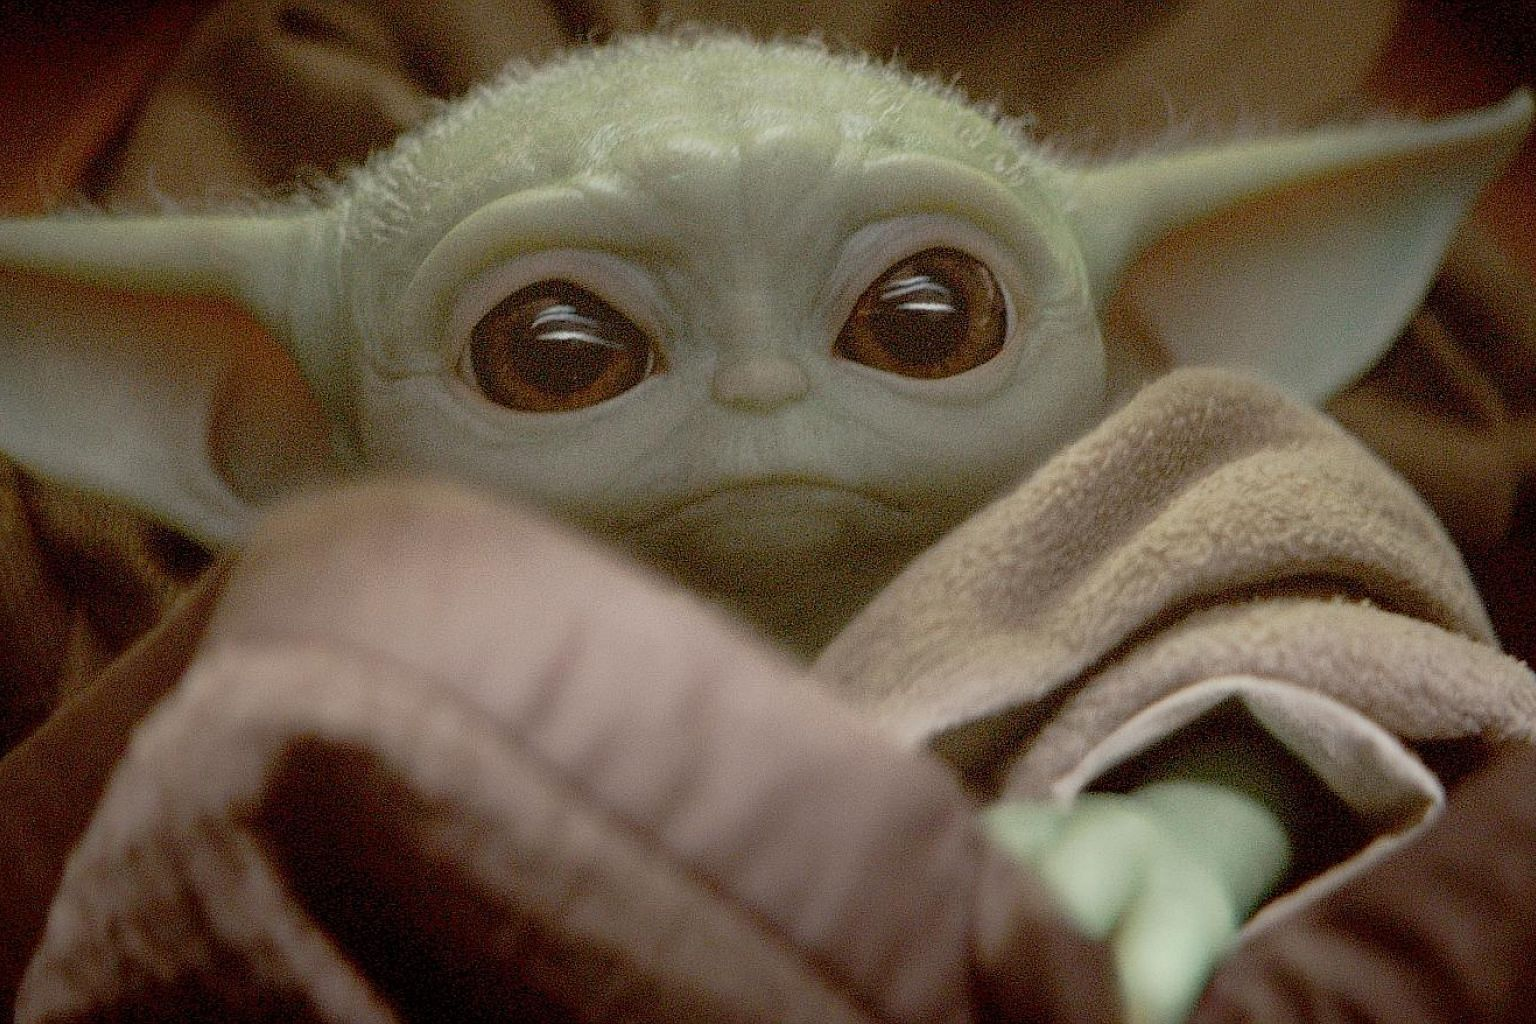 "Baby Yoda is a moniker given to a character from the television show The Mandalorian. Vaguely called ""The Child"" in the series, it resembles Yoda from the Star Wars films."